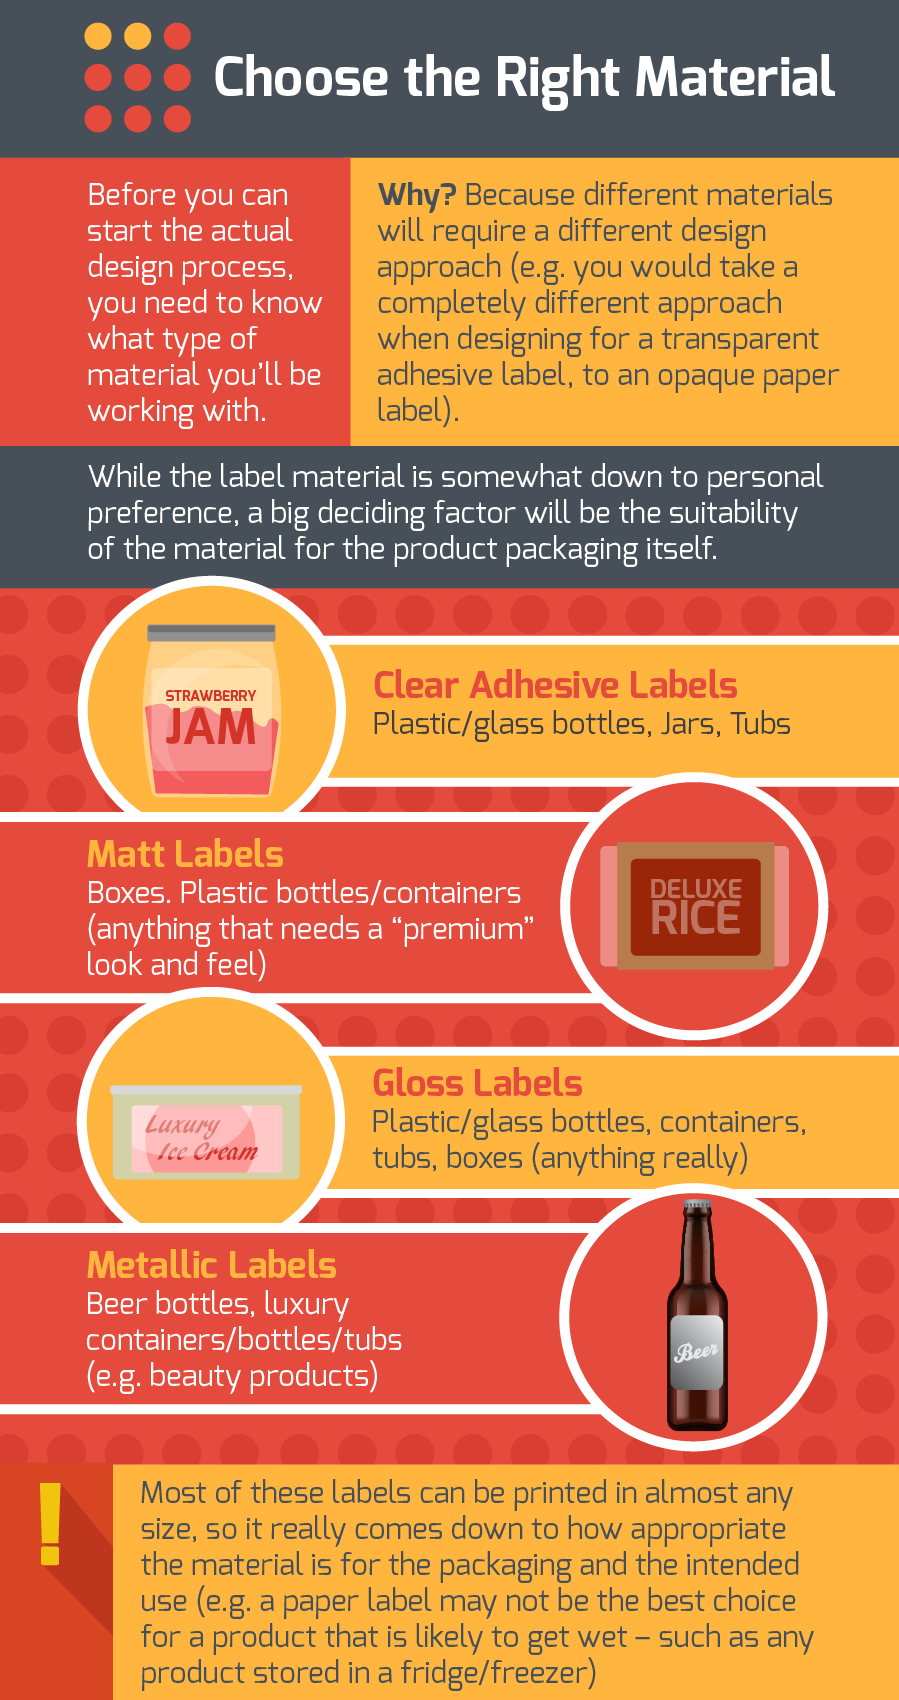 Product Packaging And Why It Is Important On Packaging Of